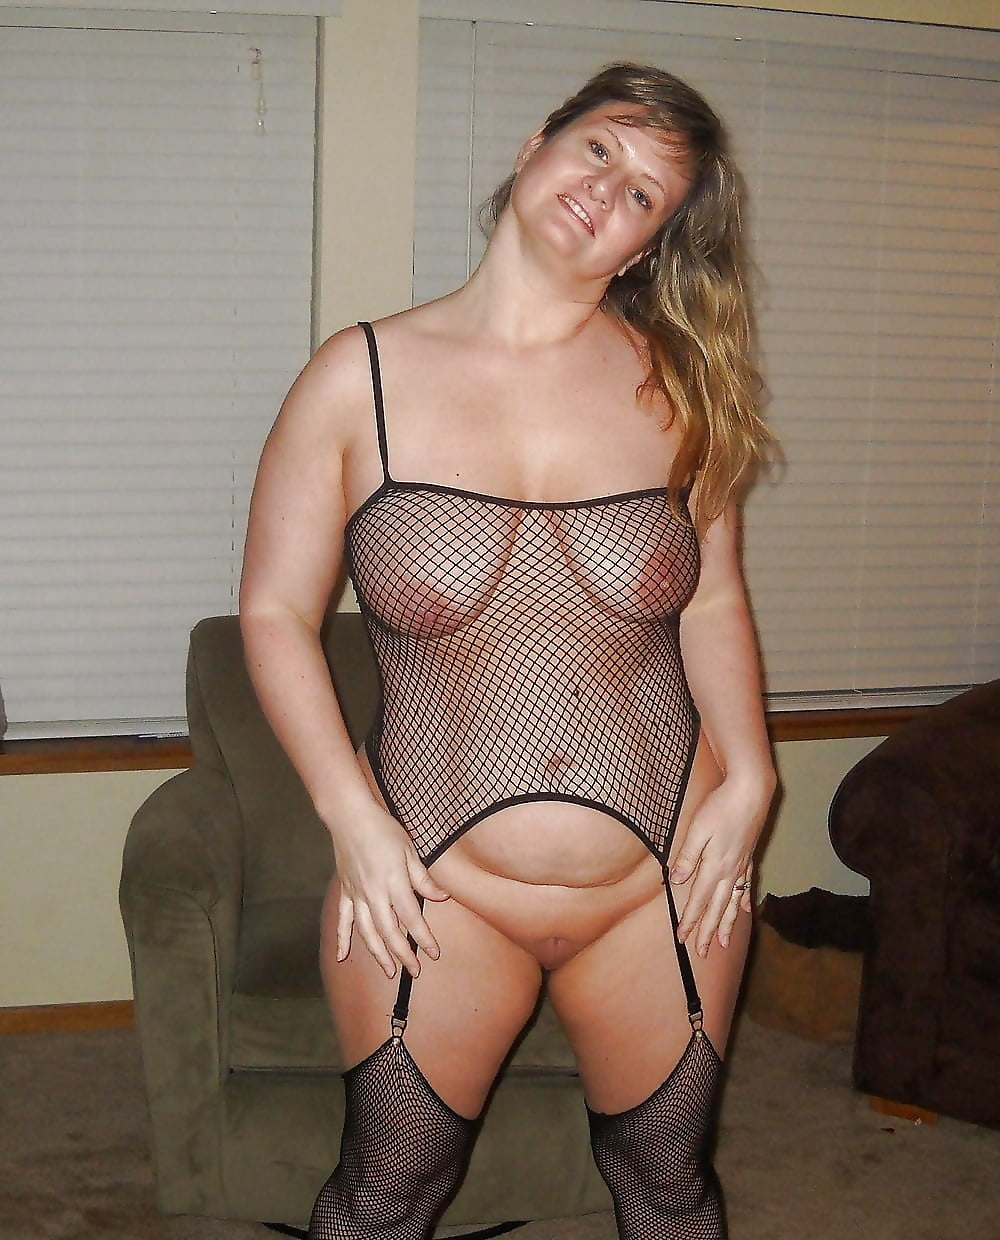 Mature nude mexican moms in see through — photo 14